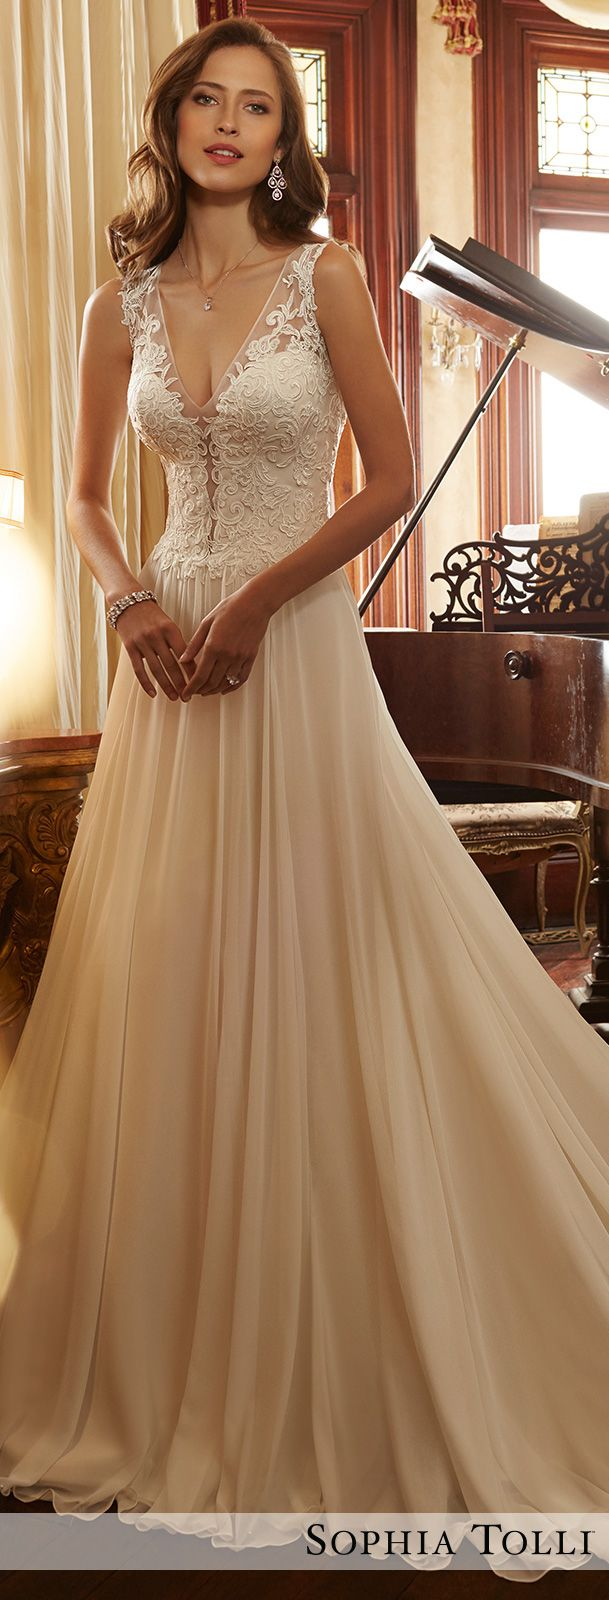 Wedding Dress by Sophia Tolli Spring 2017 Bridal Collection | Style No. » Y11717 Yvette